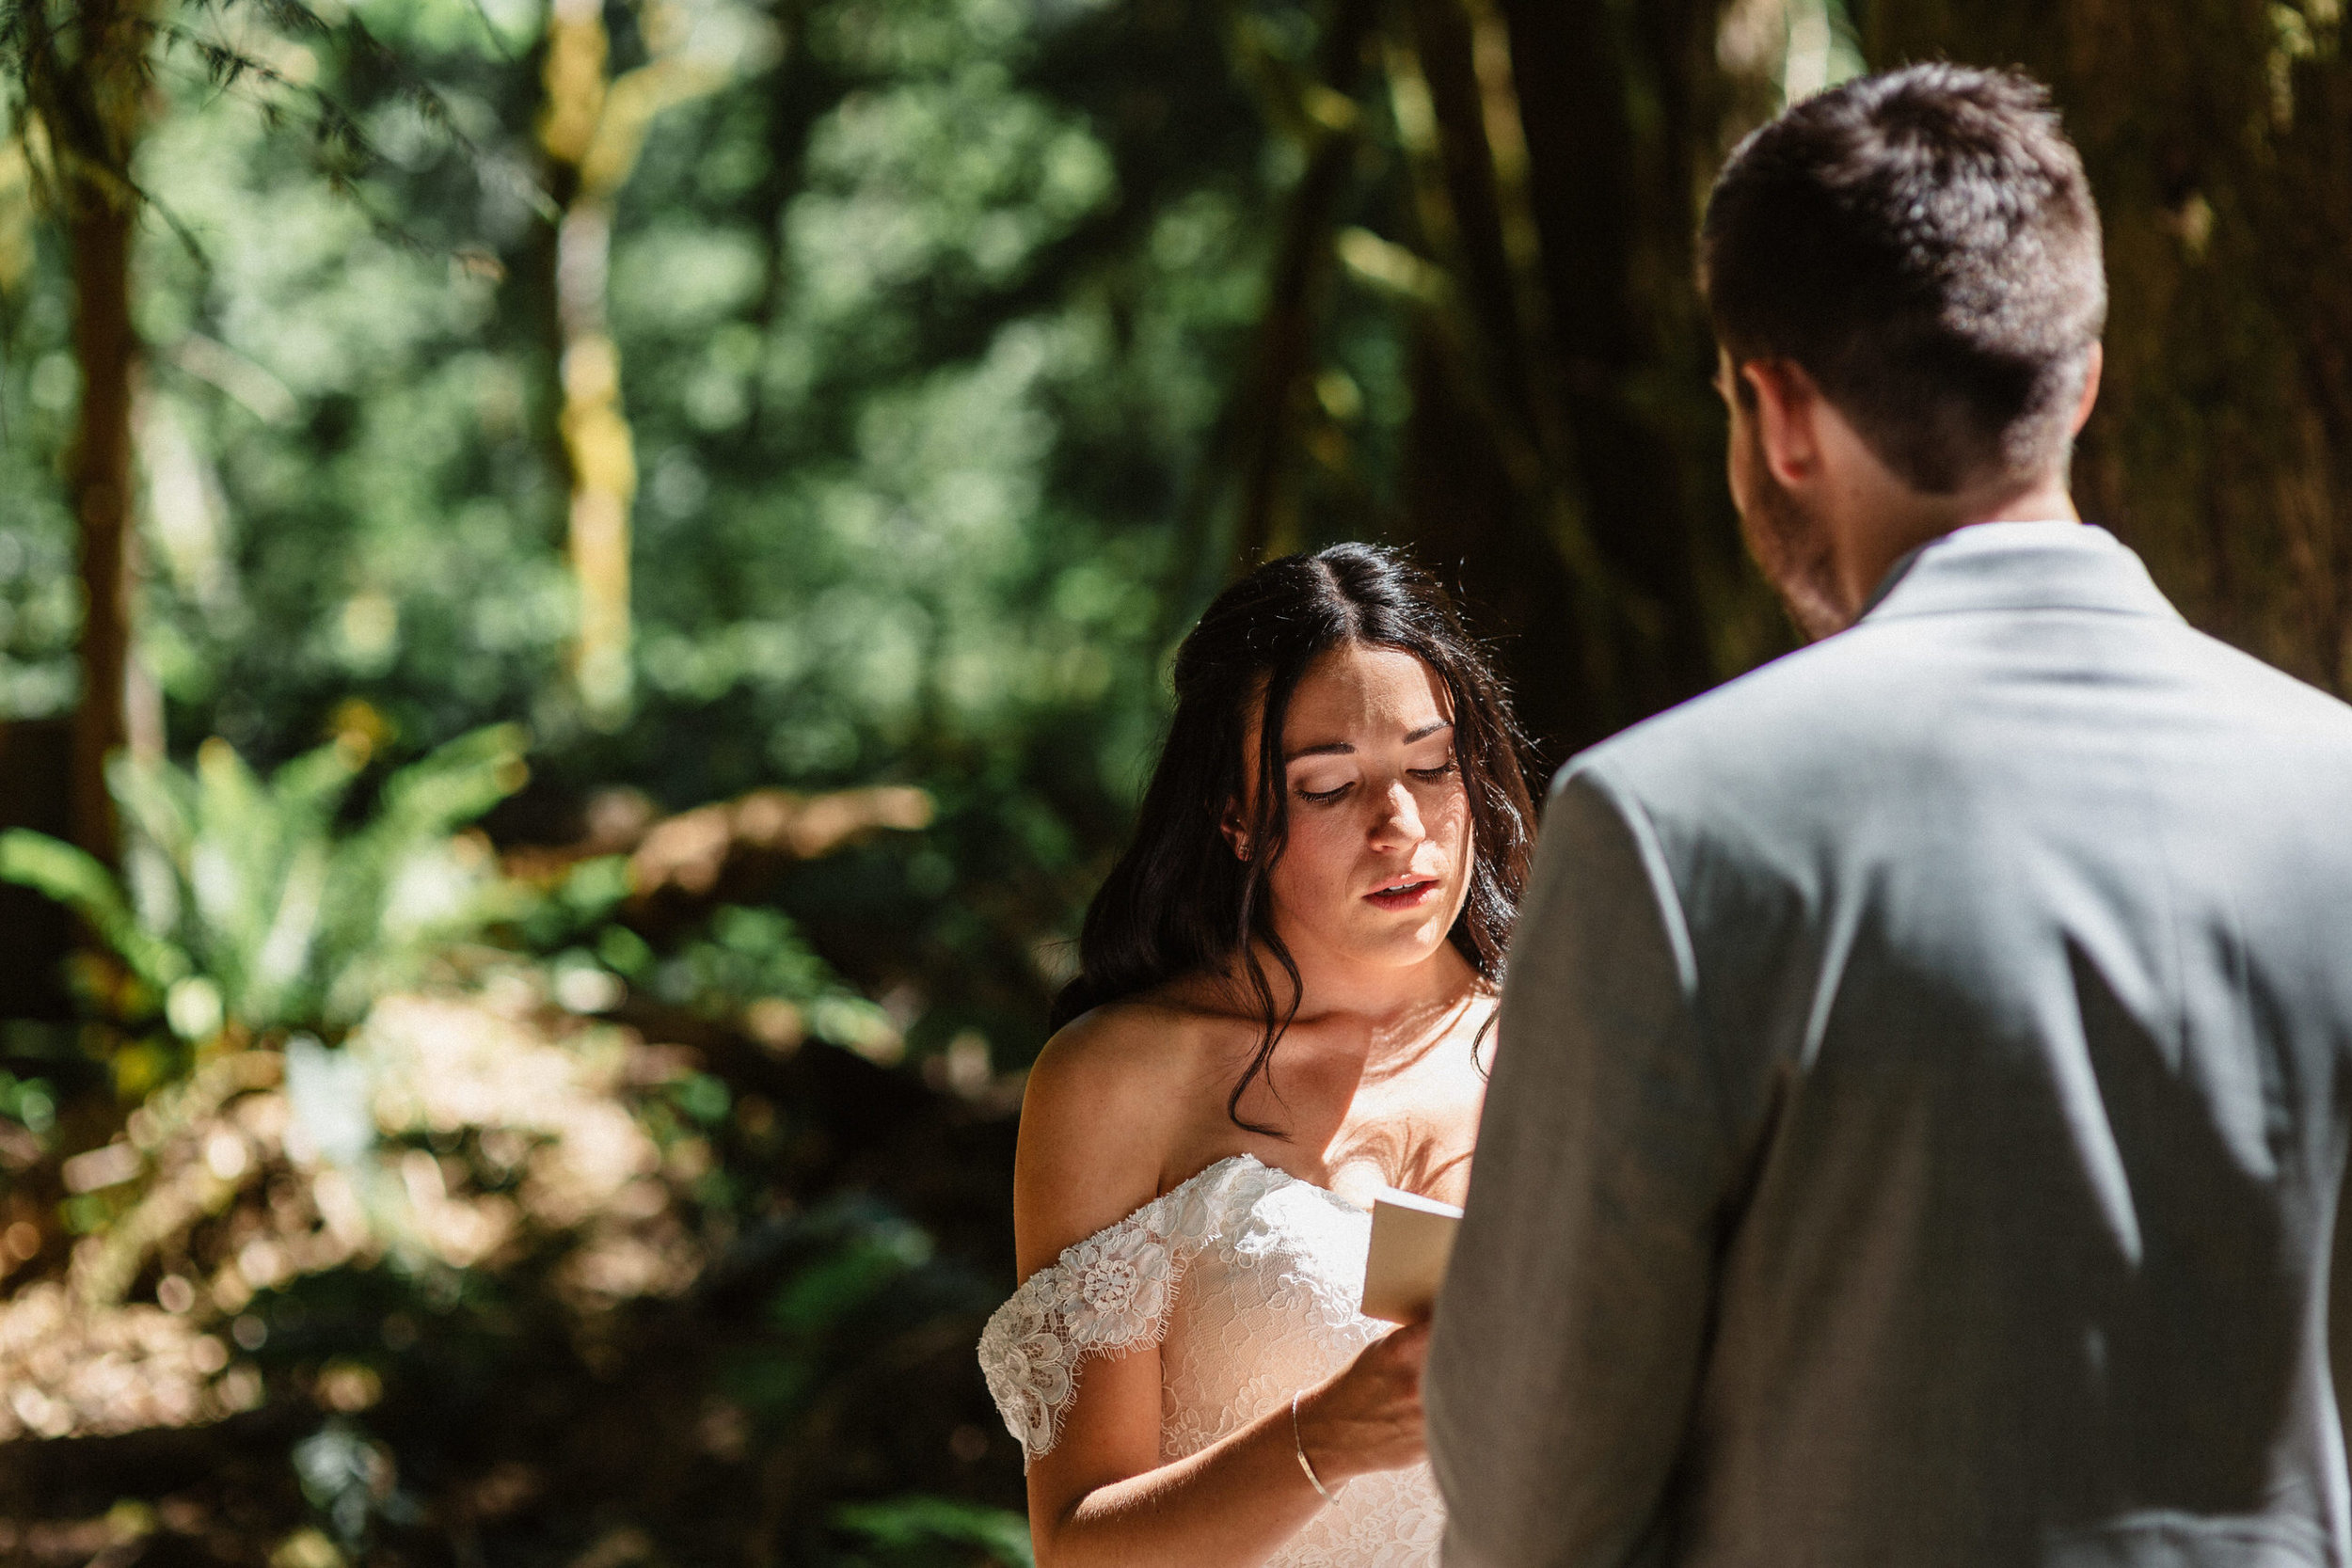 MT Hood Wildwood elopement wedding oregon portland photography0052.JPG